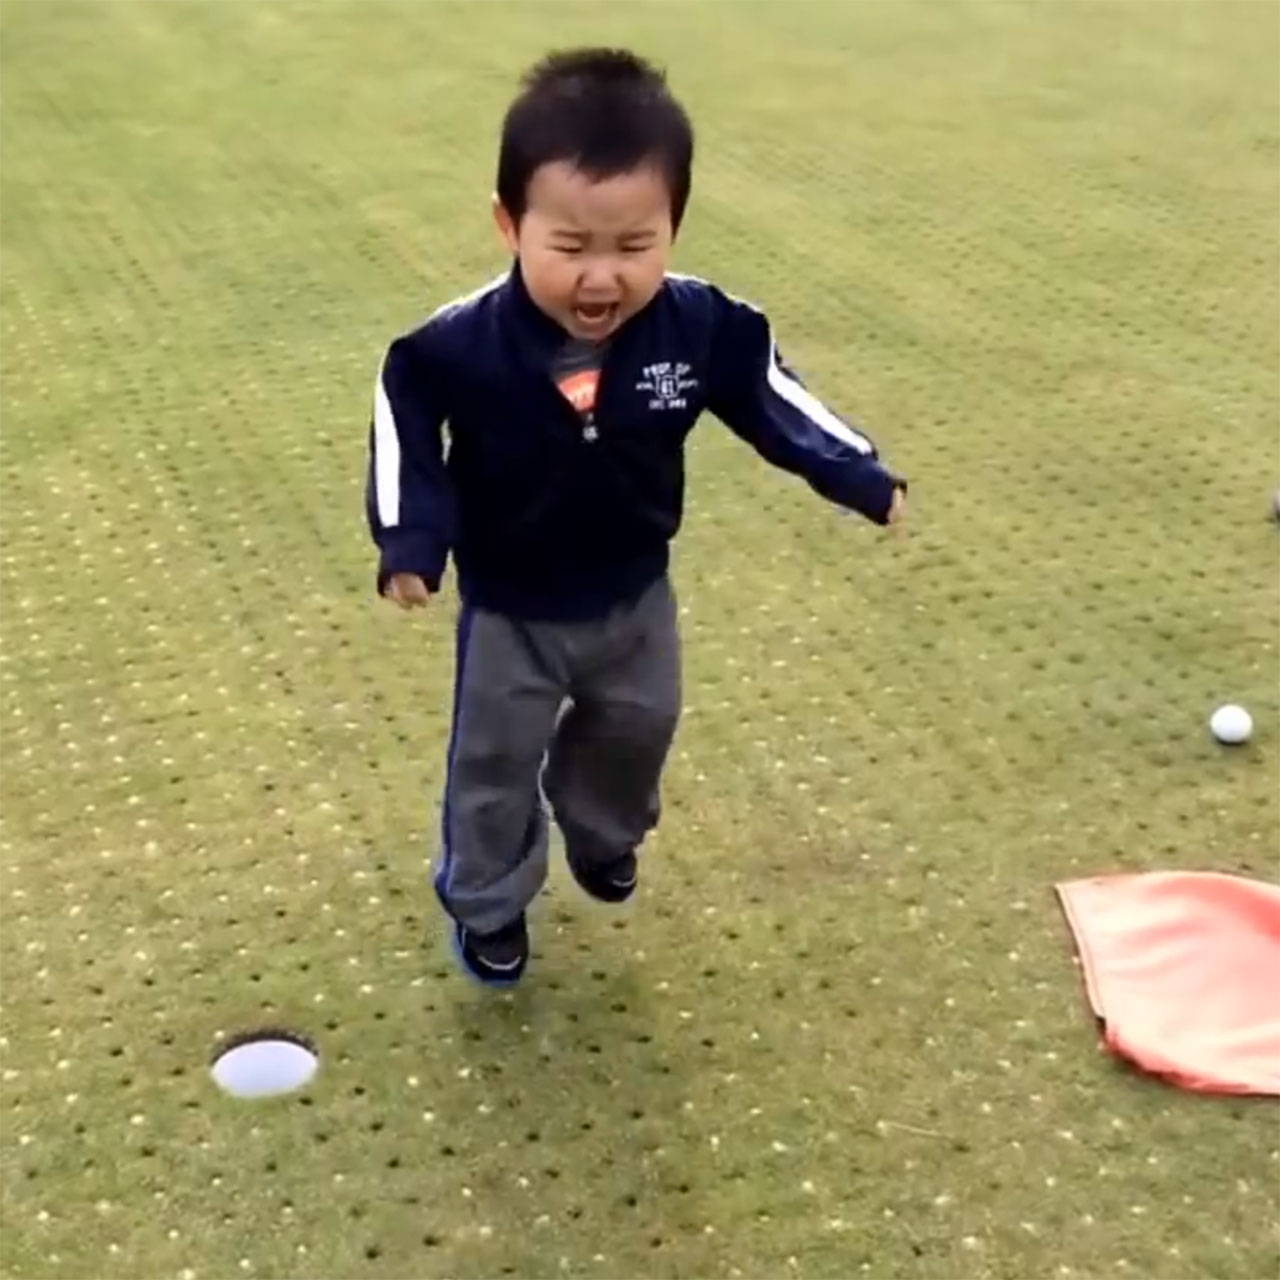 Toddler throws tantrum after missed putt.